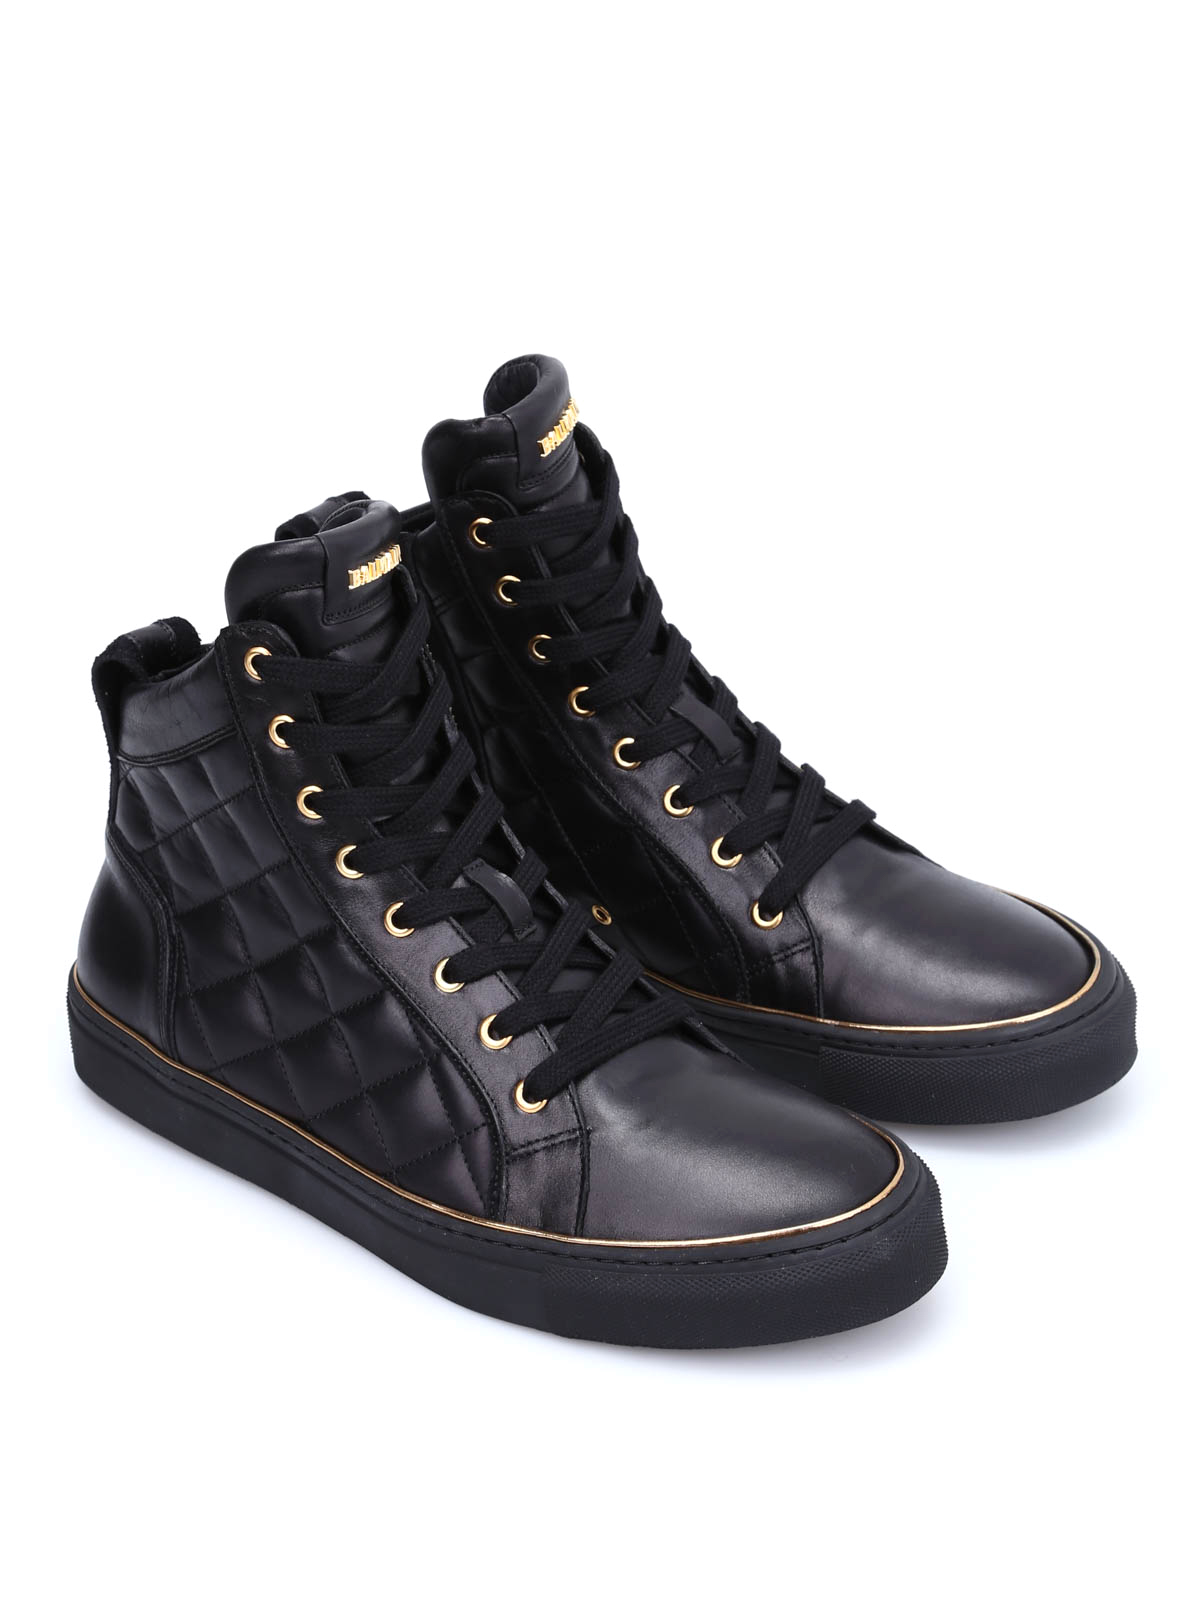 Balmain Quilted Leather High Top Sneakers Trainers